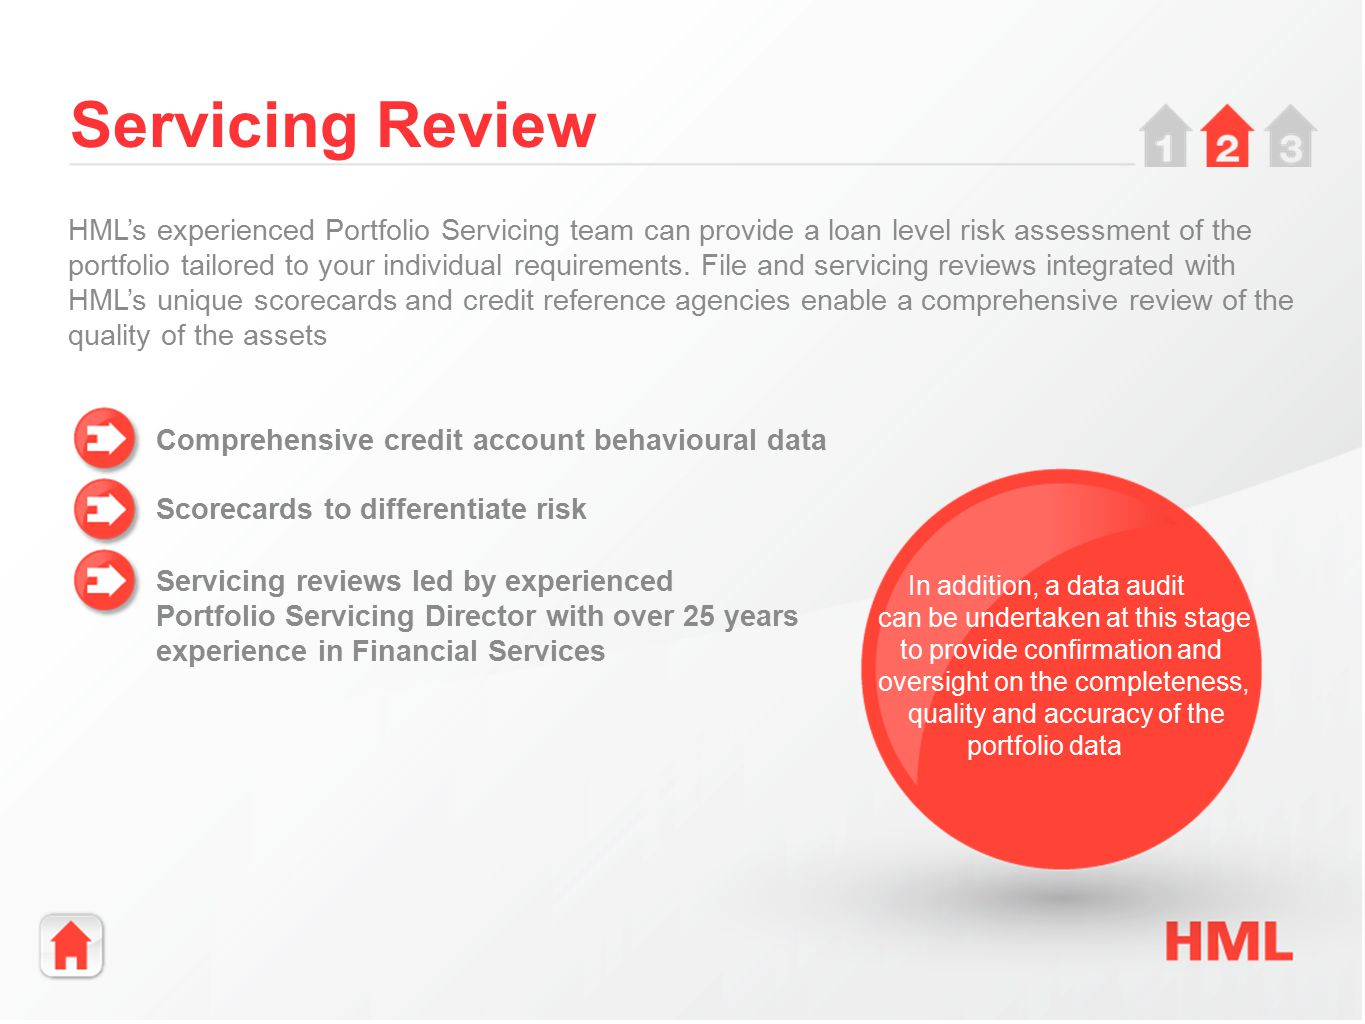 Servicing Review Comprehensive credit account behavioural data Scorecards to differentiate risk Servicing reviews led by experienced Portfolio Servicing Director with over 25 years experience in Financial Services HML's experienced Portfolio Servicing team can provide a loan level risk assessment of the portfolio tailored to your individual requirements.